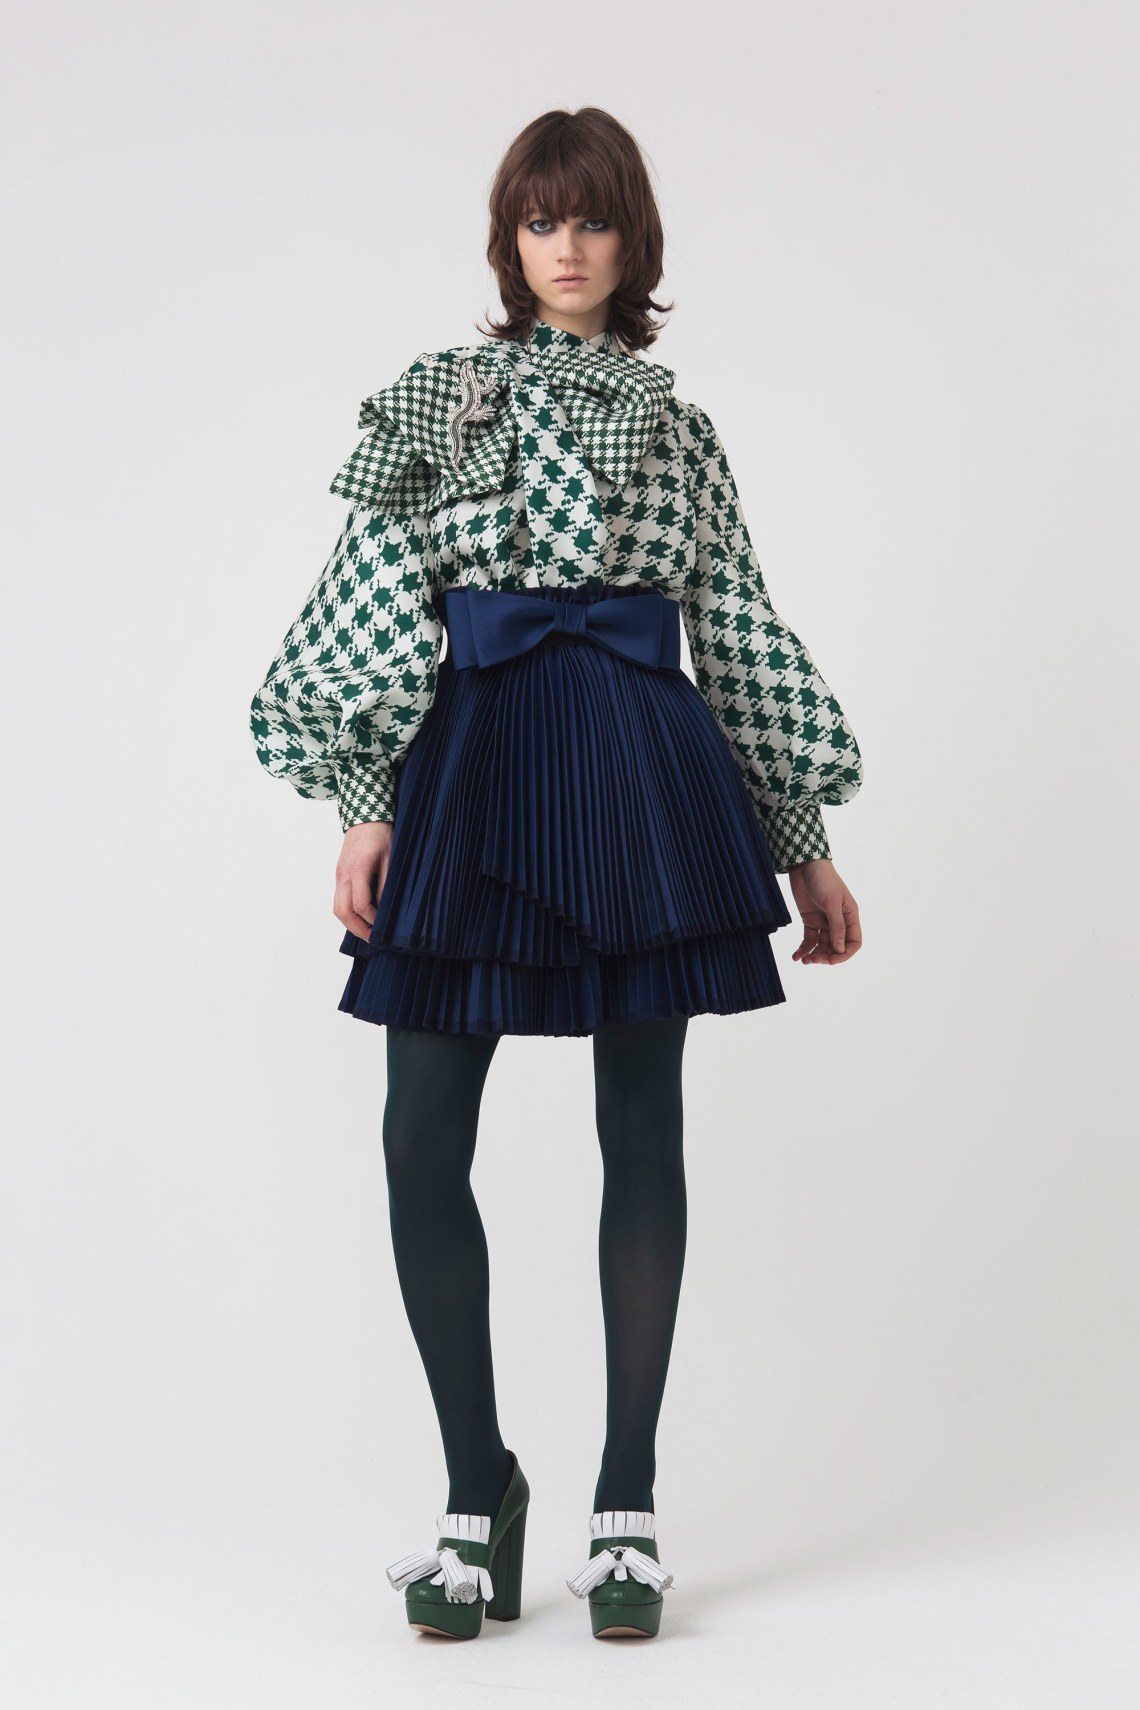 dice-kayek-fall-2018-ready-to-wear-how-to-style-exaggerated-sleeves.jpg